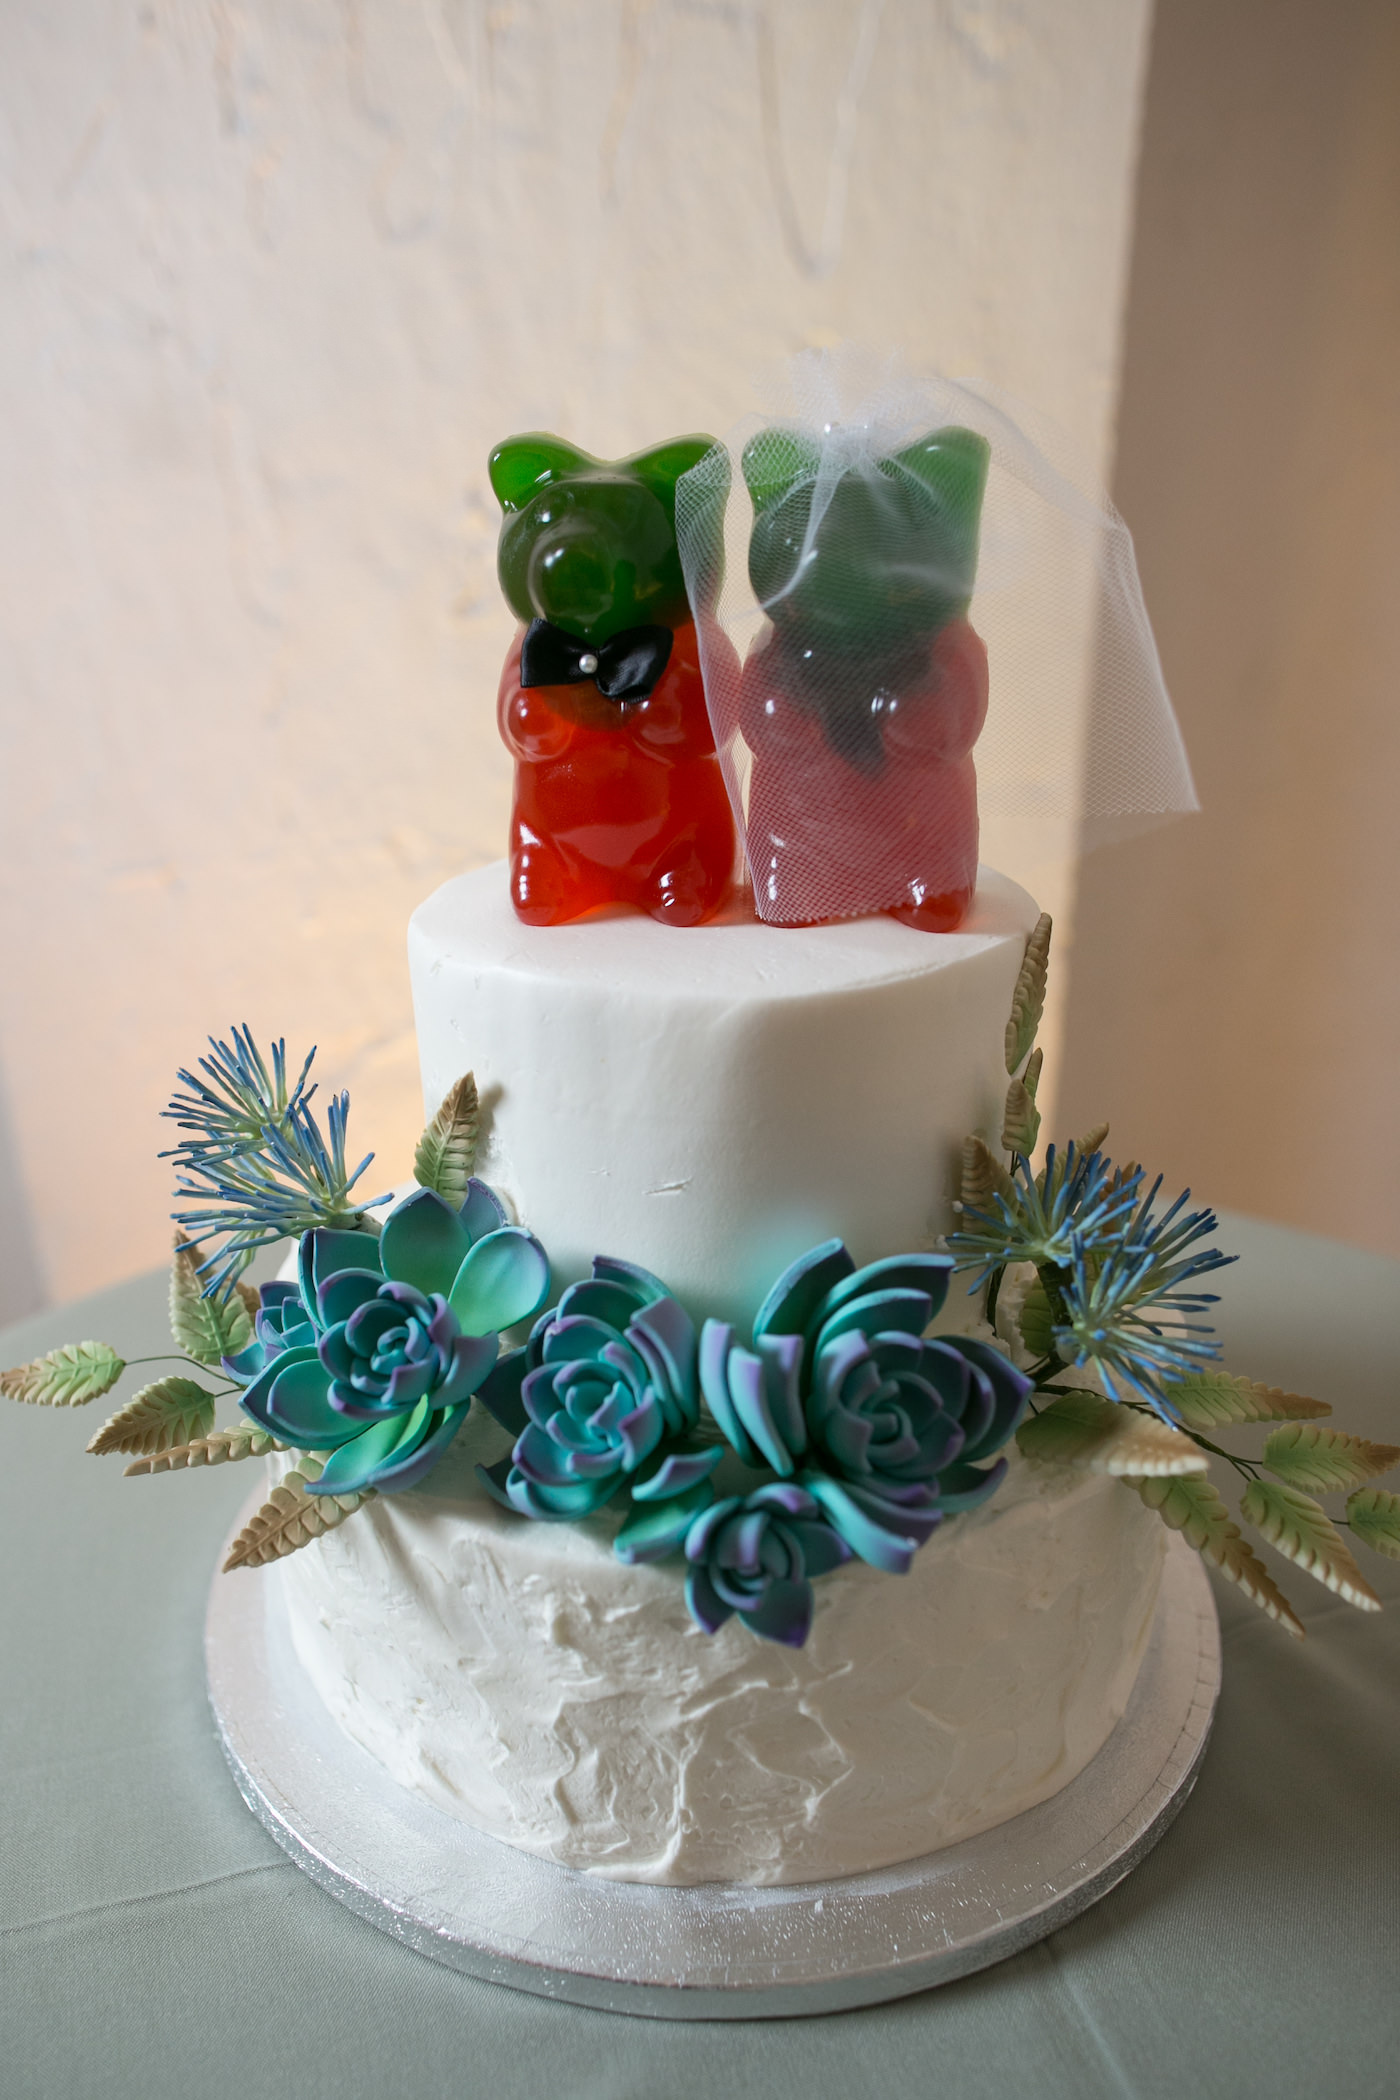 Two Tier White Wedding Cake With Succulent Sugar Flowers And Red And Green Bride And Groom Gummy Bear Cake Topper Wedding Photographer Carrie Wildes Photography Tampa Wedding Planner Unique Weddings